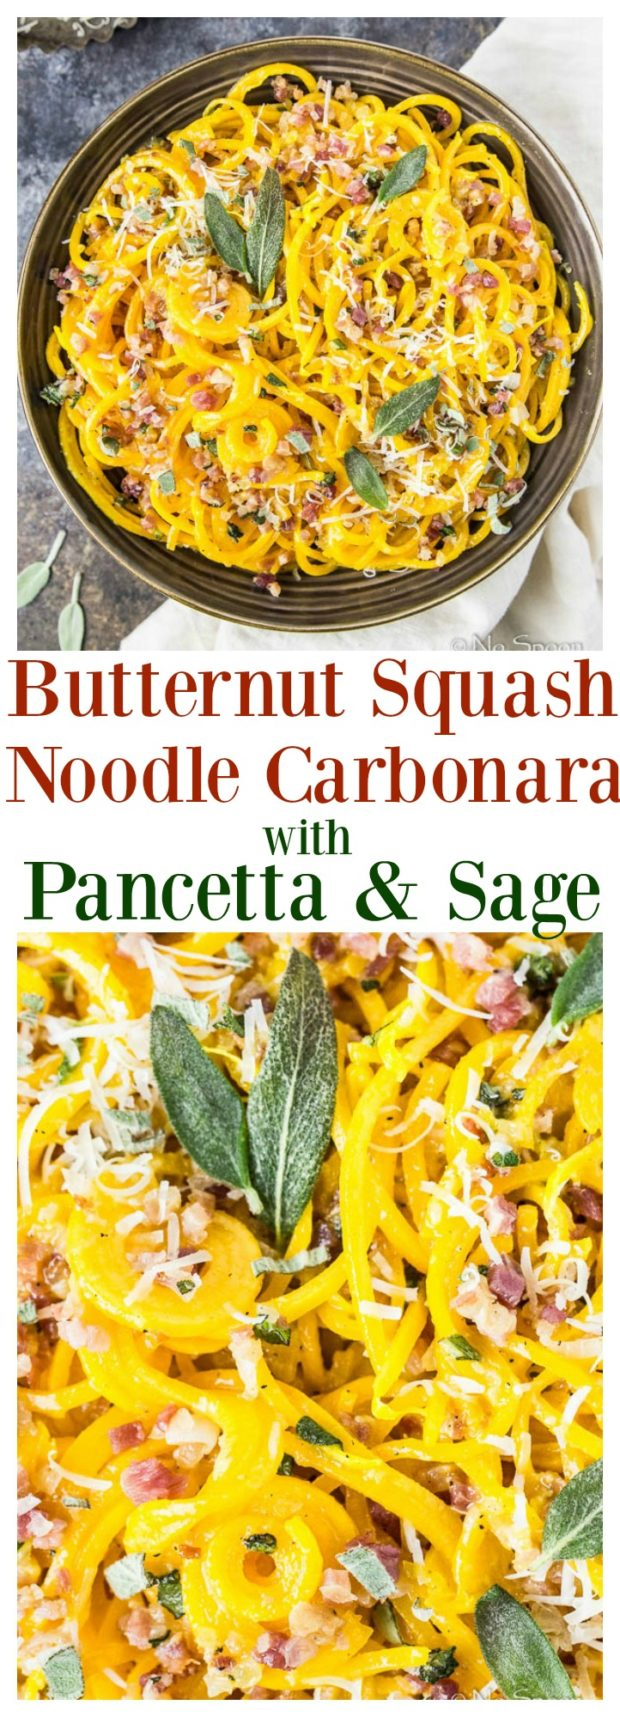 Butternut Squash Noodle Carbonara with Pancetta and Sage